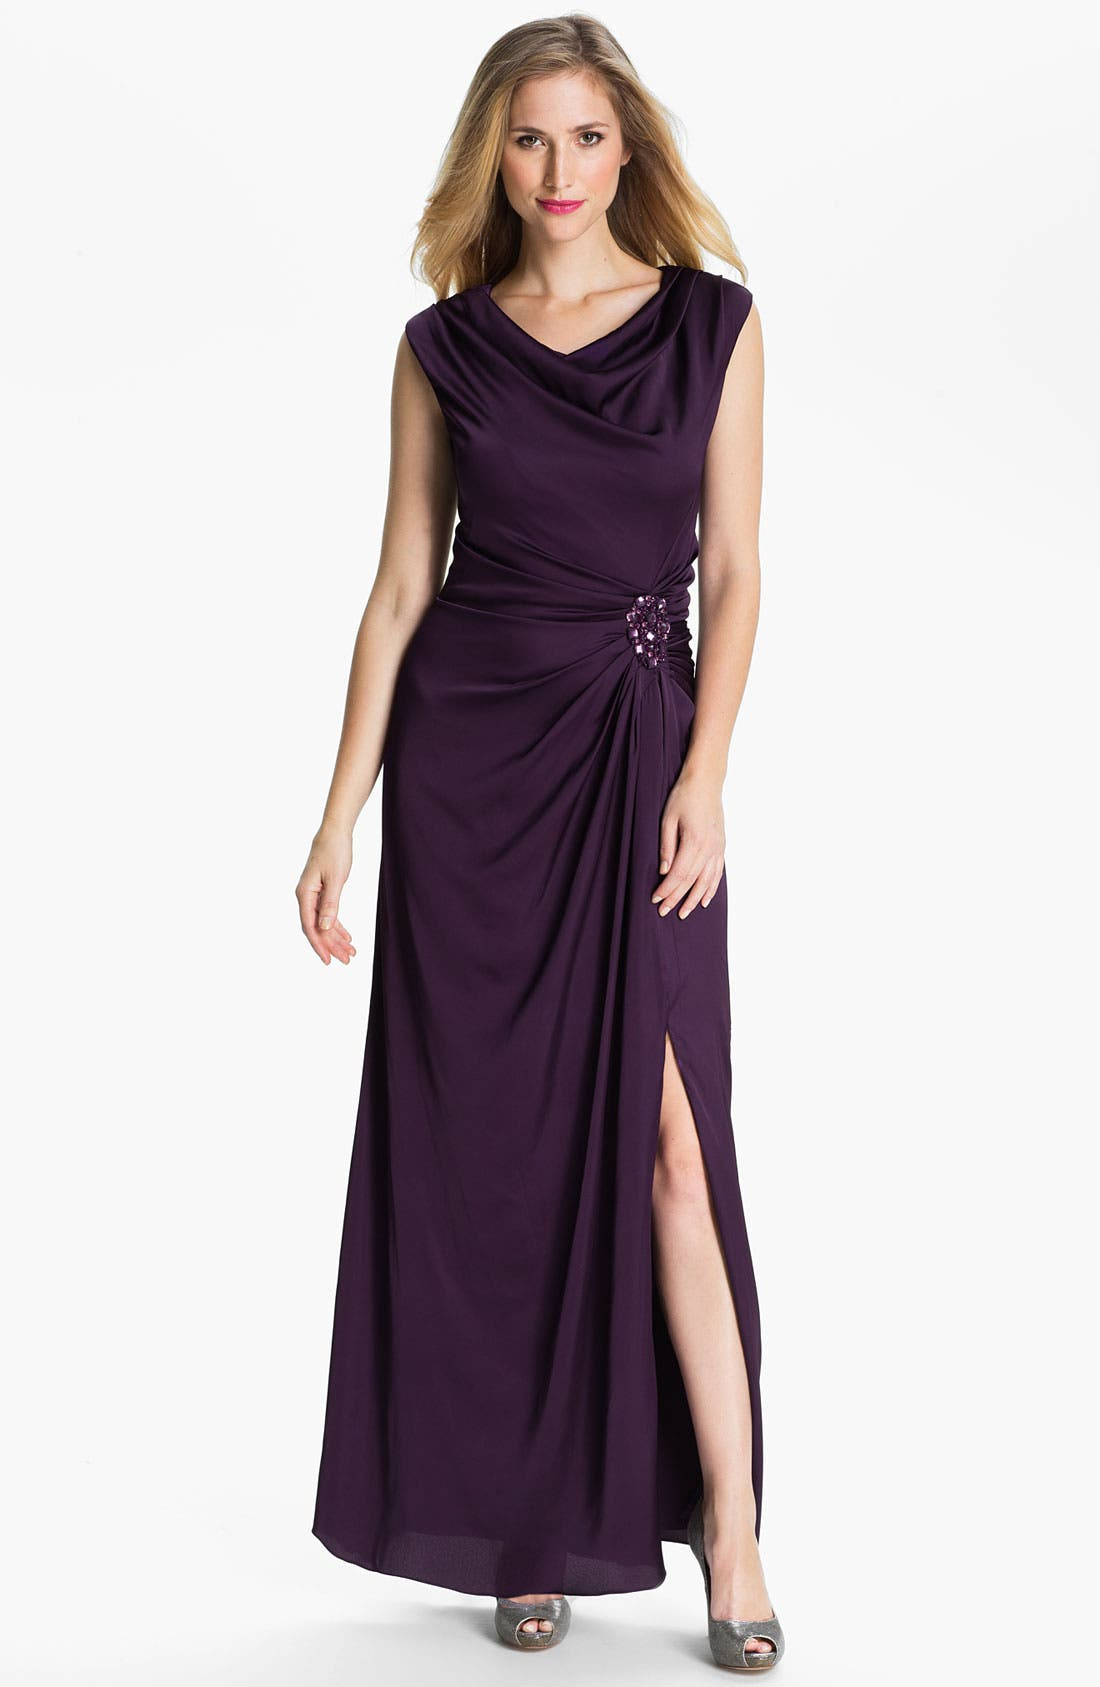 Alternate Image 1 Selected - Patra Cowl Neck Side Slit Satin Gown (Petite)